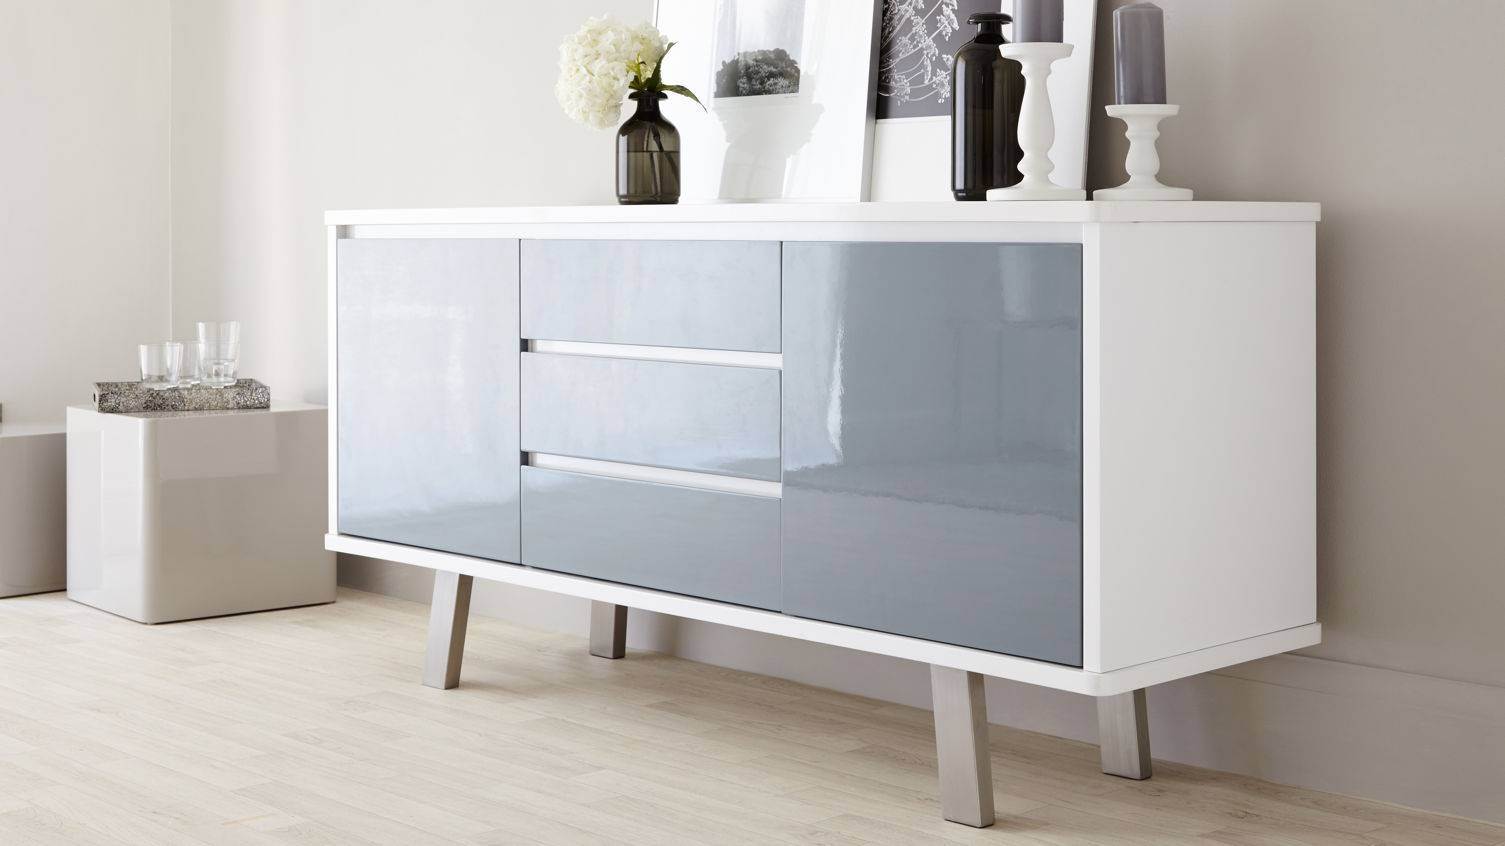 Furniture: Mid Century Modern Sideboard For Inspiring Interior in White Wood Sideboards (Image 8 of 30)